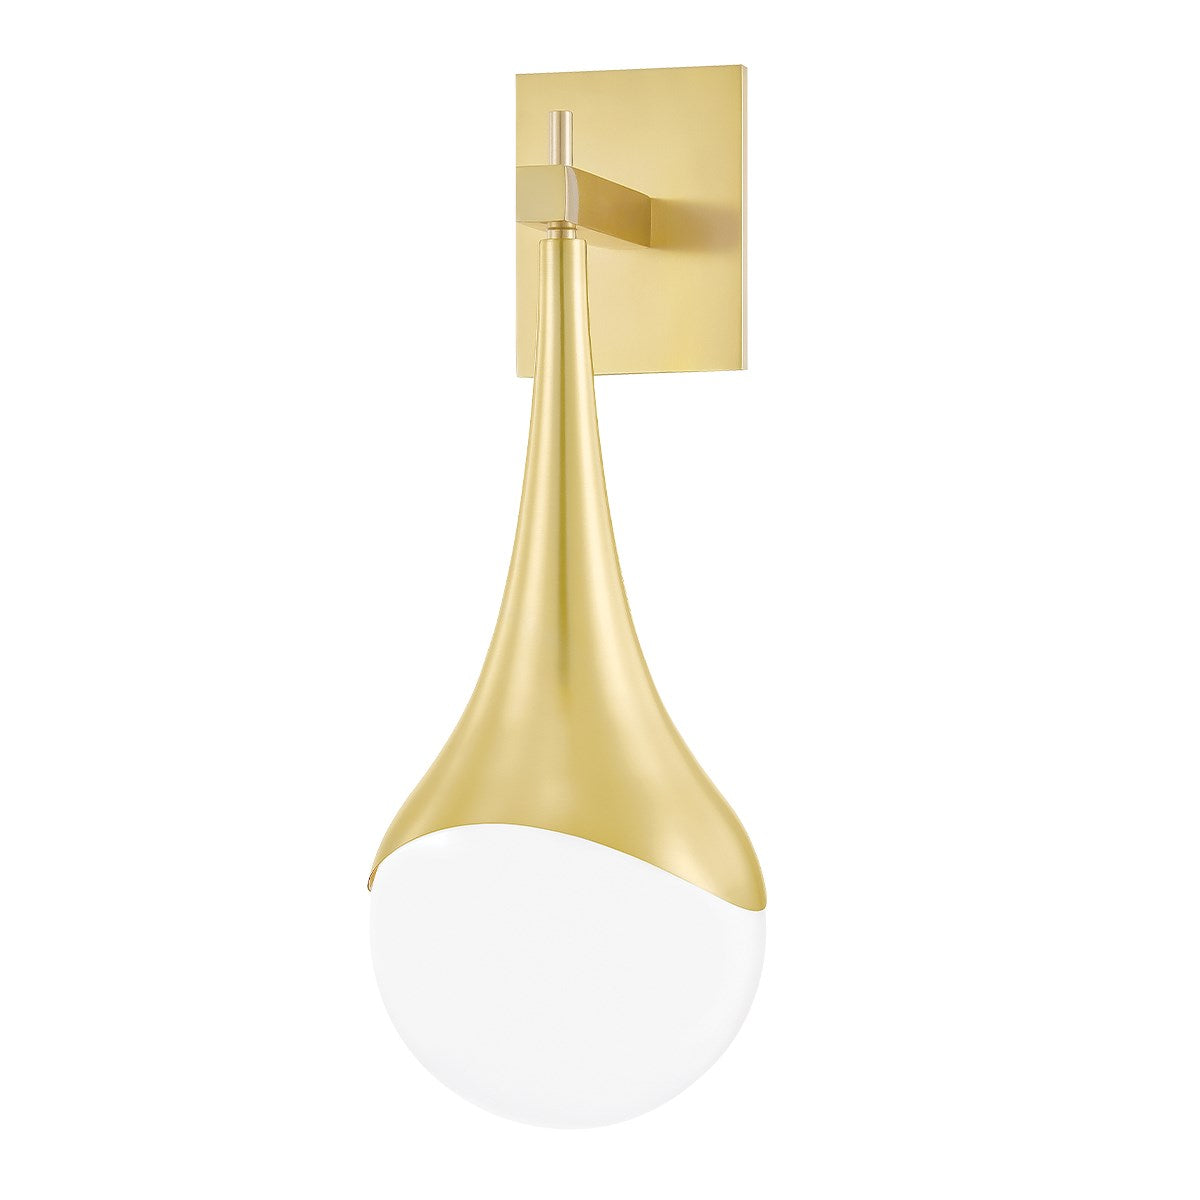 Ariana Single Wall Sconce